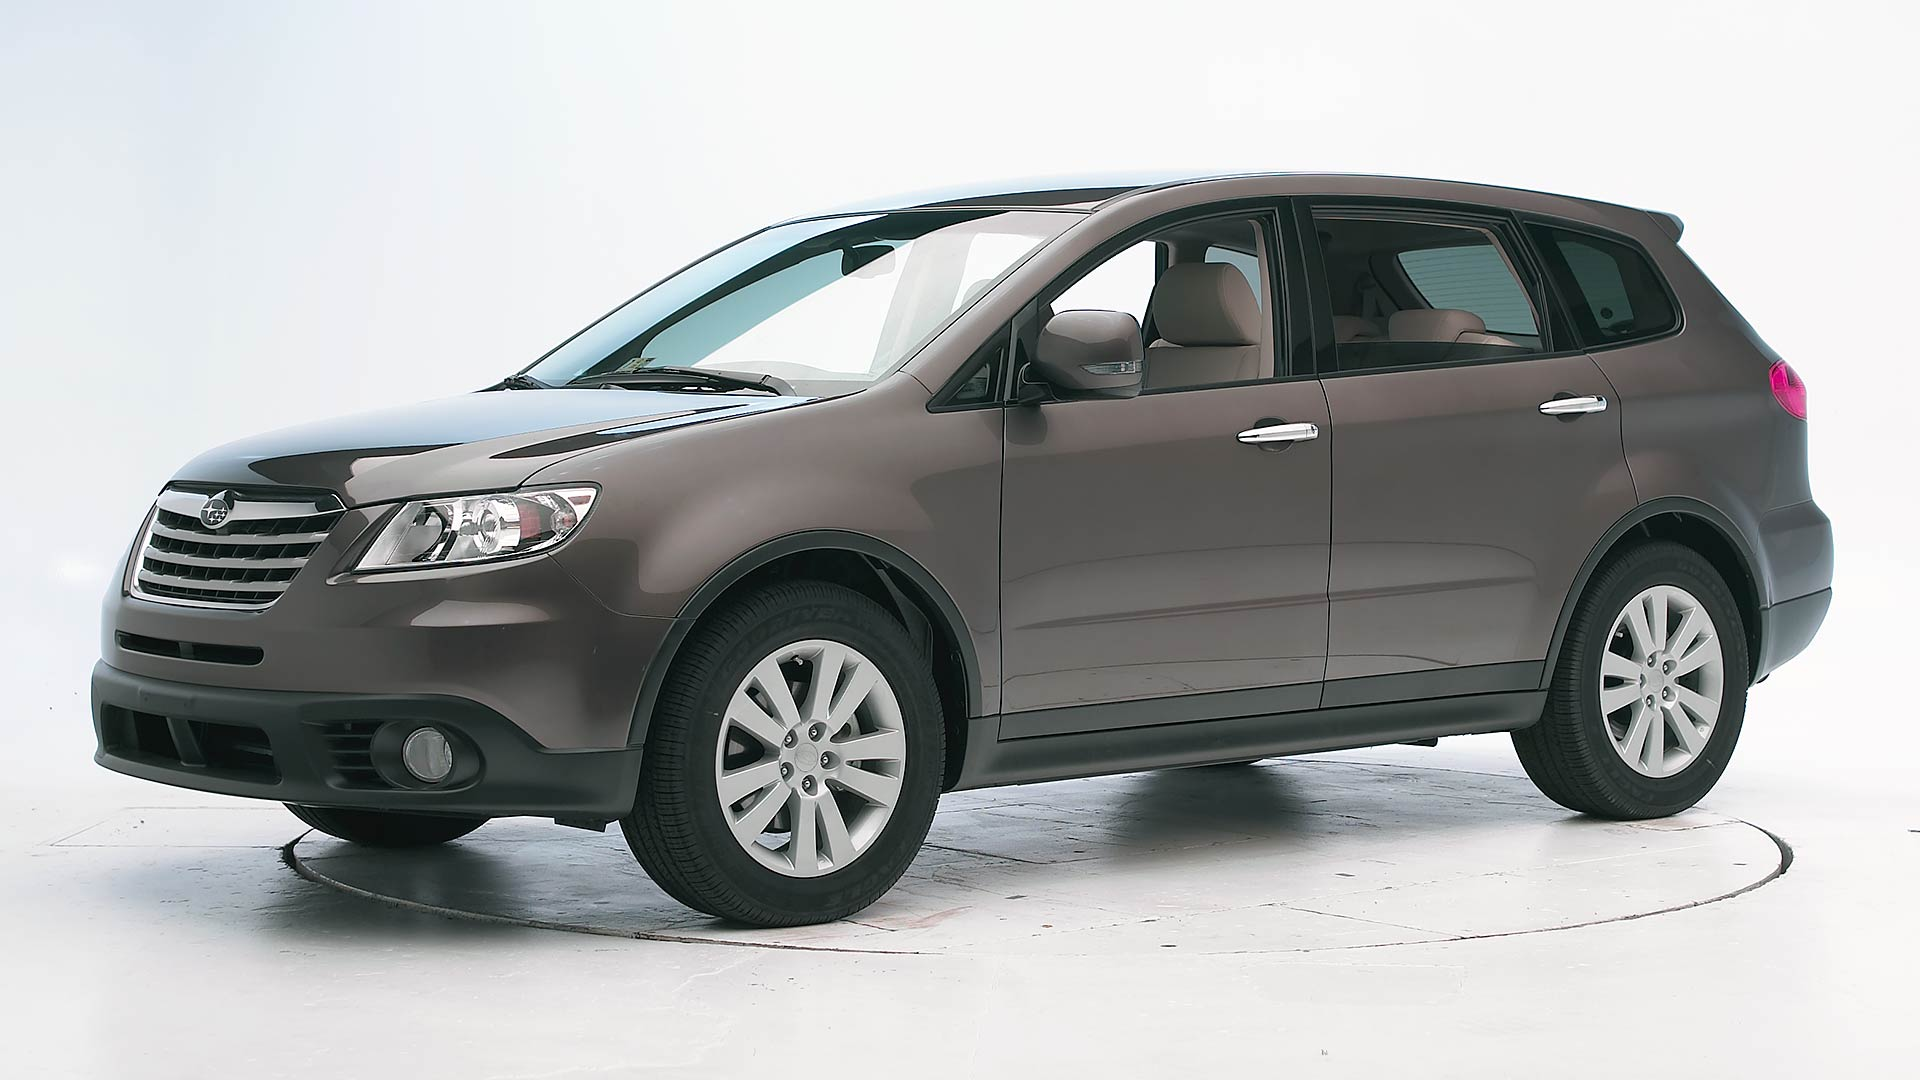 2014 Subaru Tribeca 4-door SUV